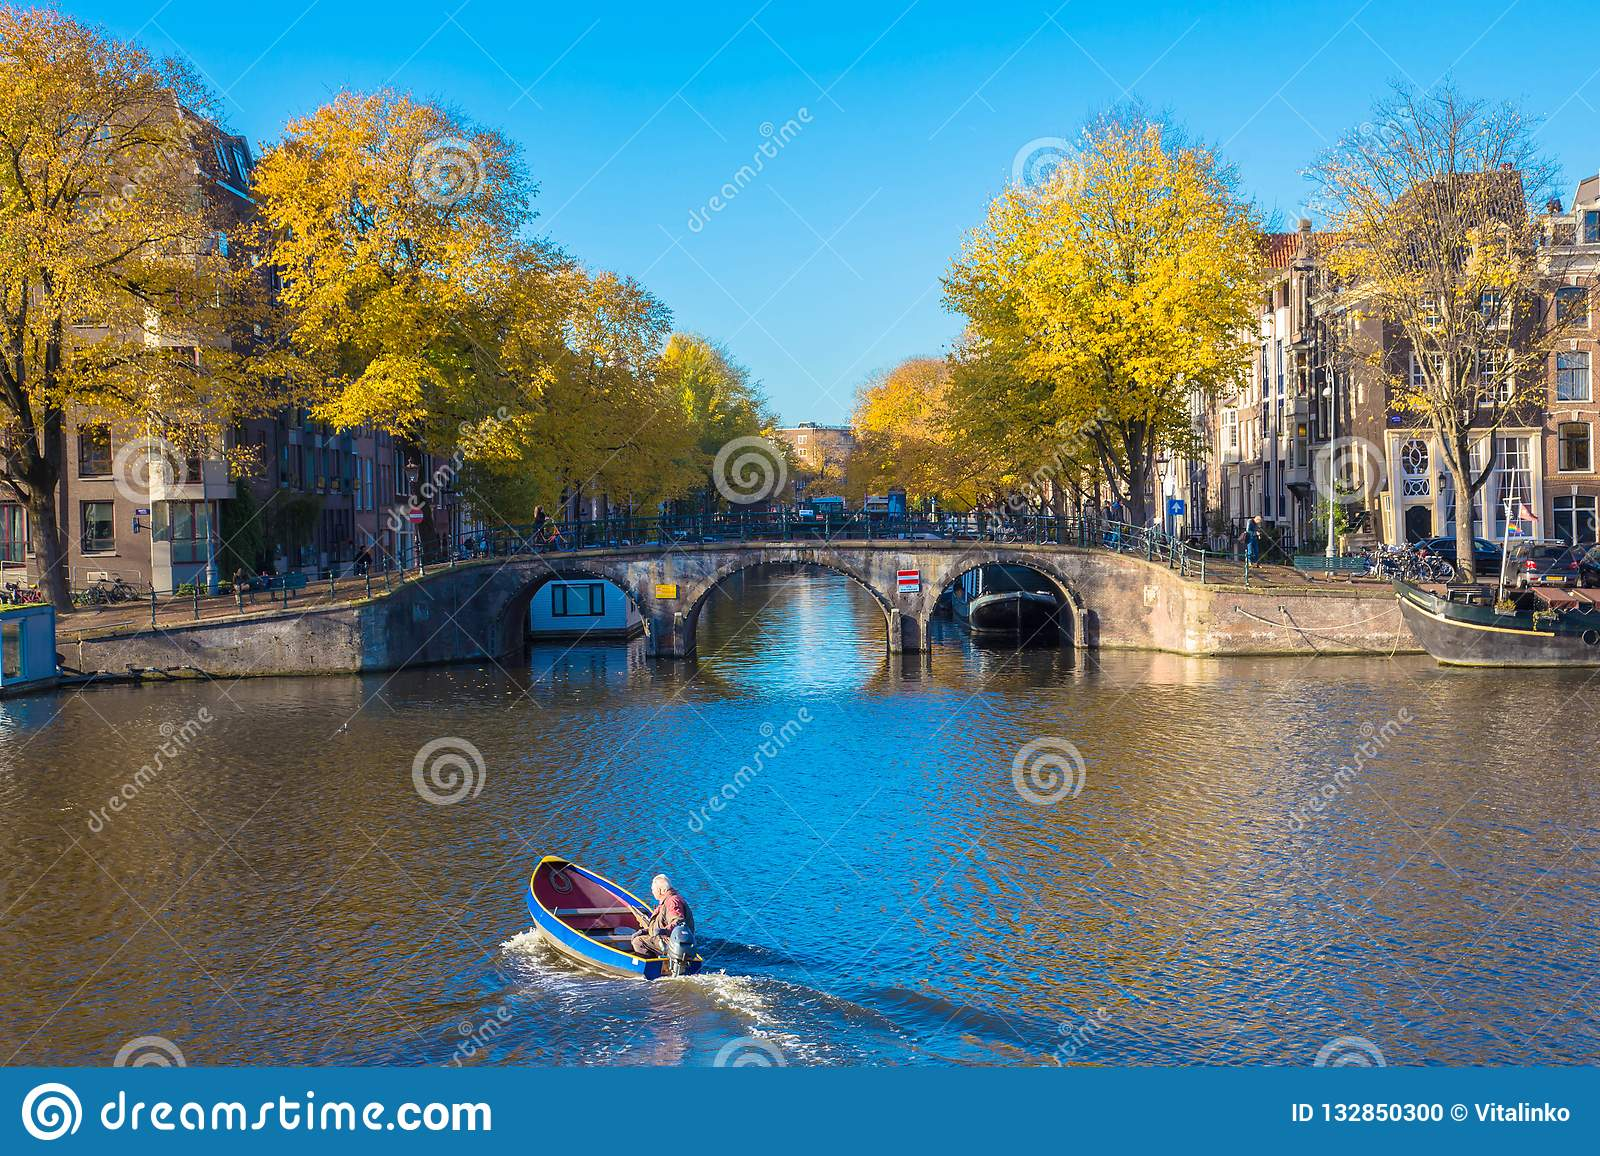 November 8, 2018. Amsterdam, Noord-Holland, the Netherlands. Amsterdam  canals. Old houses along the canals. Bridge and boat